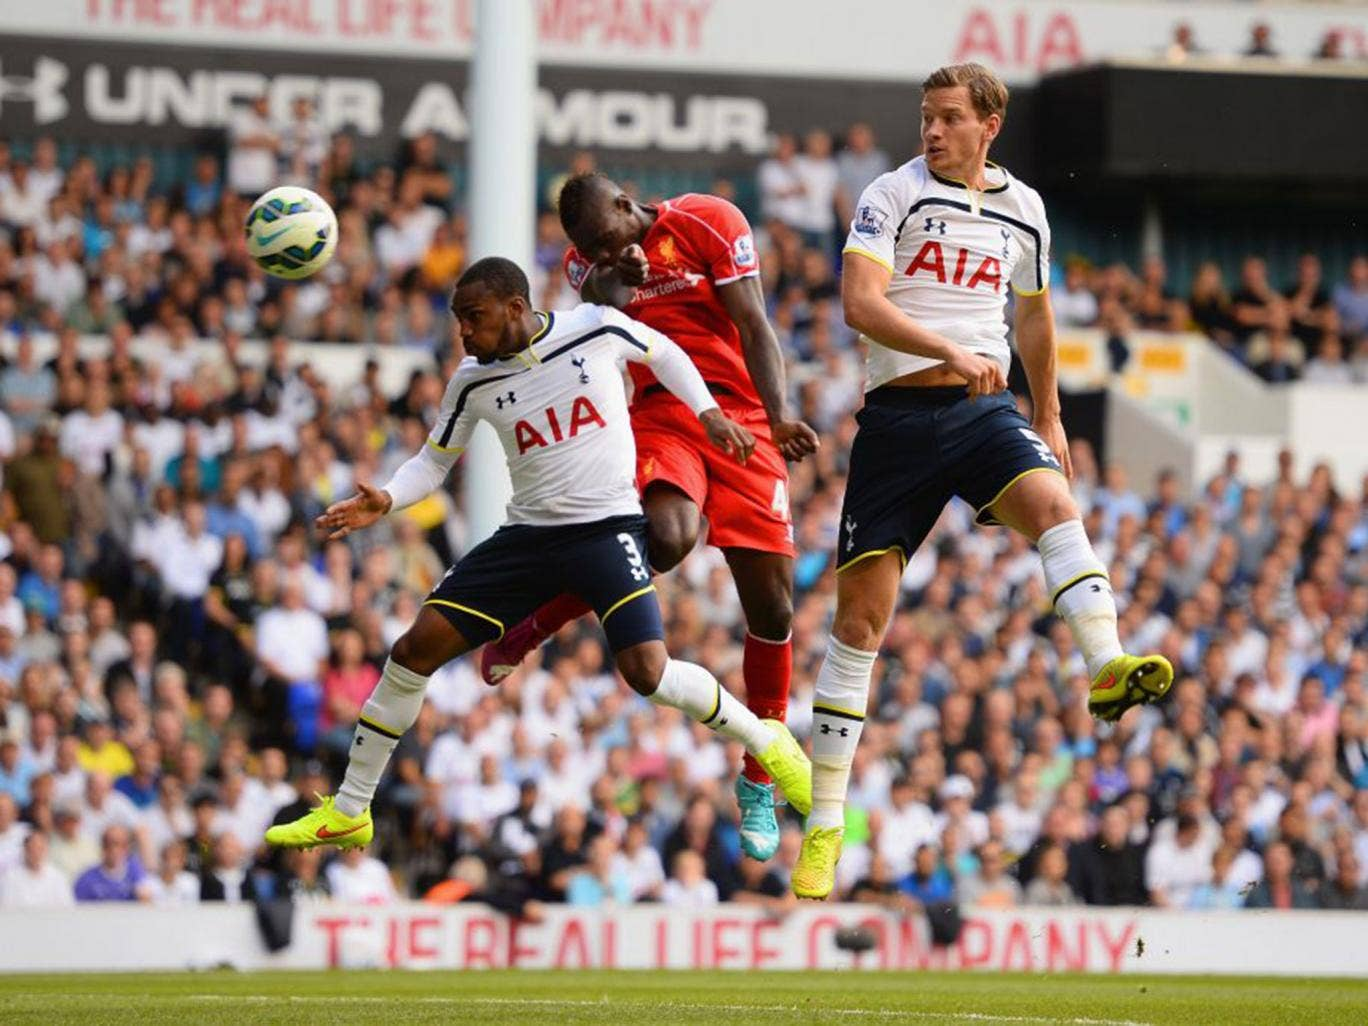 Mario Balotelli has an early header on goal during his Liverpool debut against Tottenham